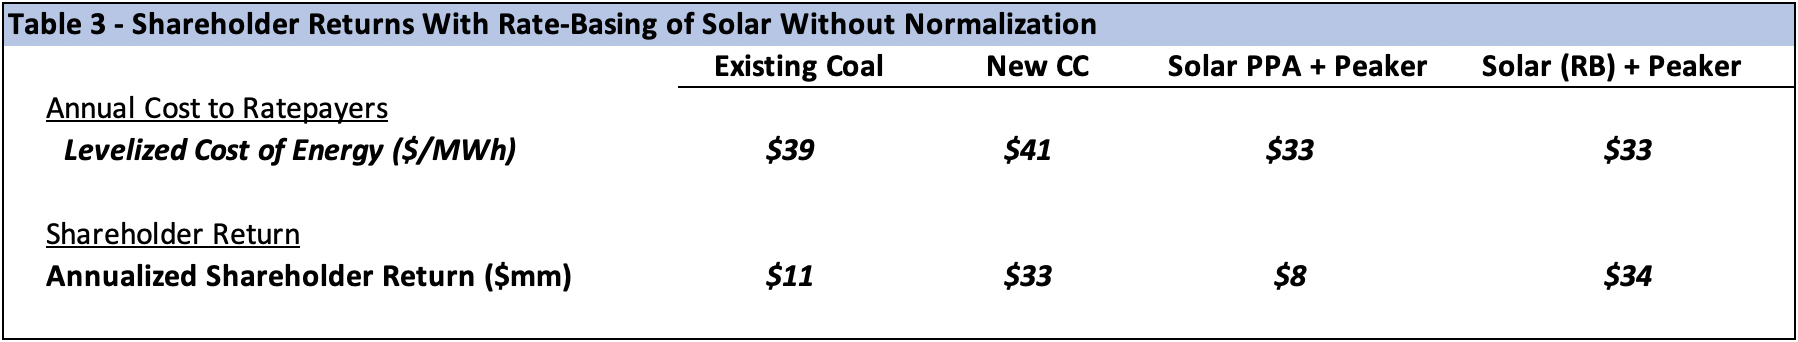 ITC solar tax normalization table 1